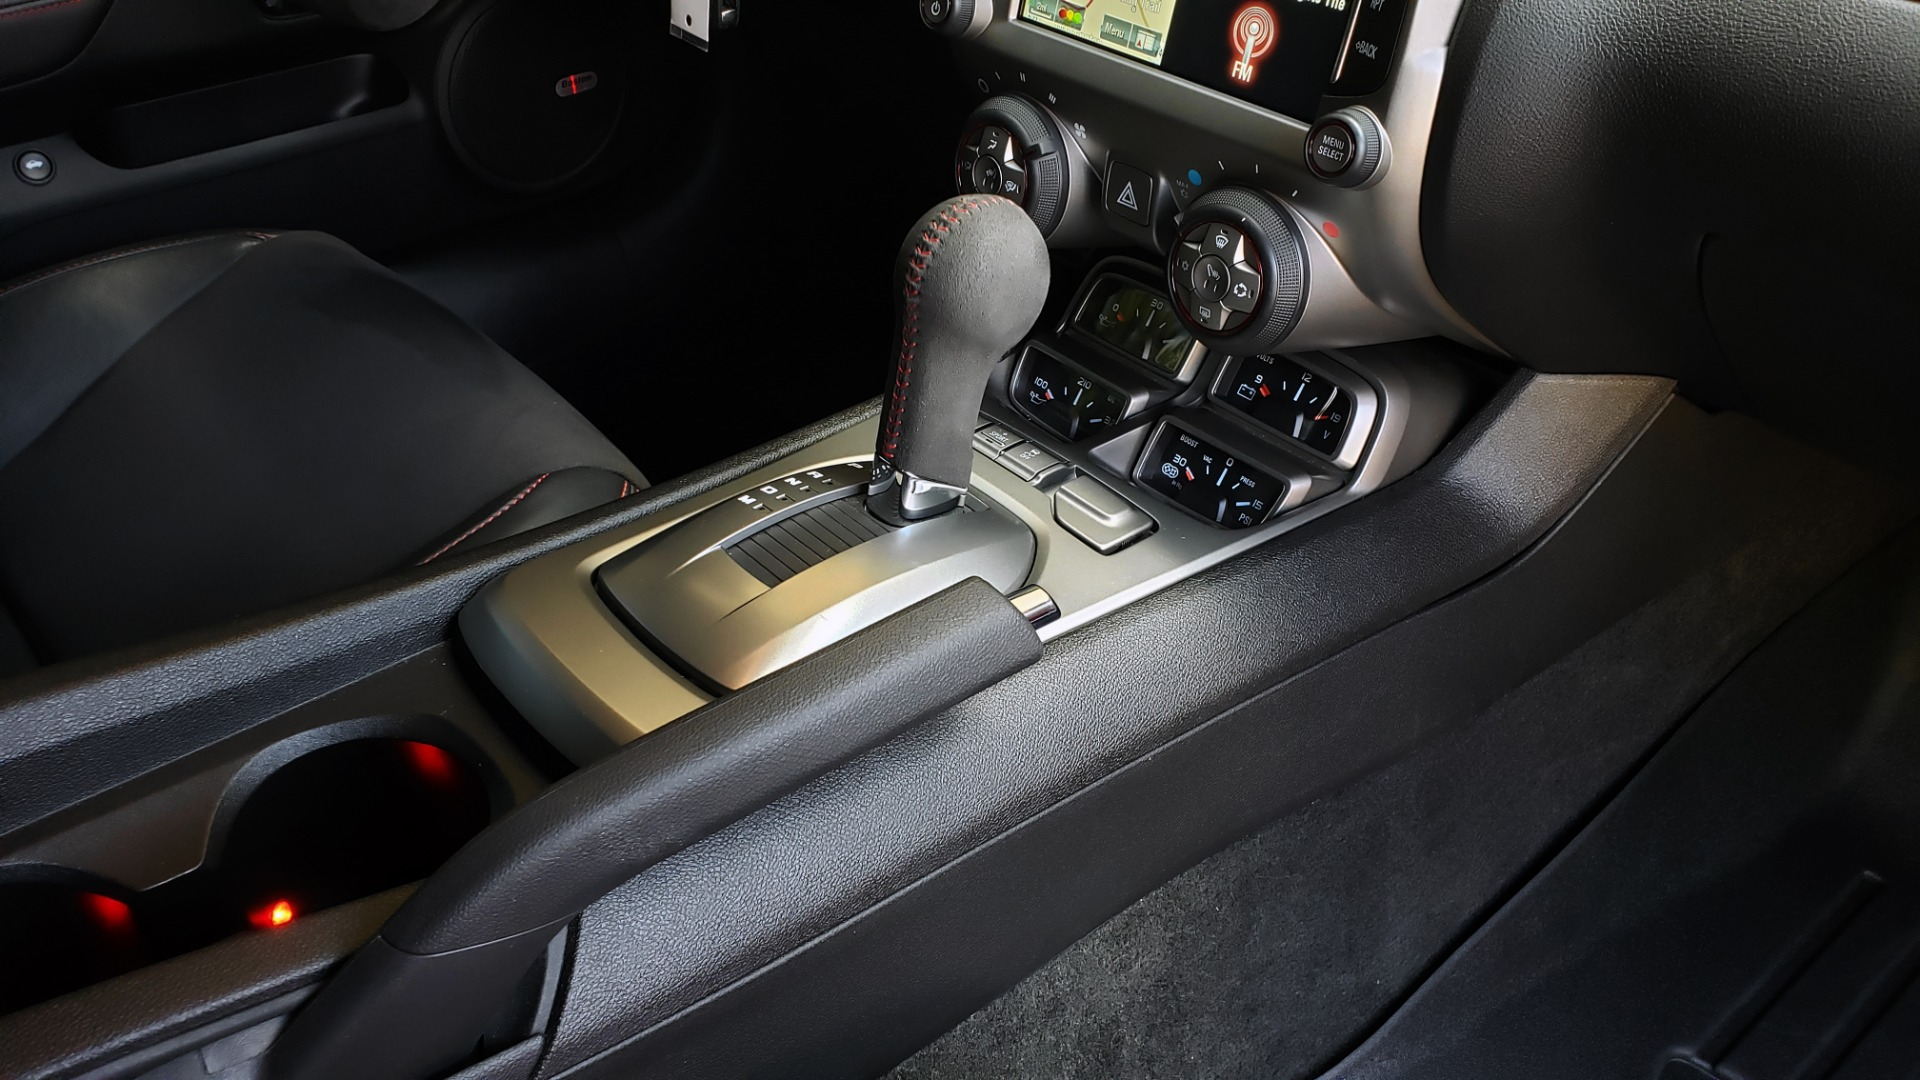 Used 2013 Chevrolet CAMARO ZL1 580HP / AUTO / NAV / BOSTON ACOUSTIC SND / REARVIEW for sale $40,995 at Formula Imports in Charlotte NC 28227 82